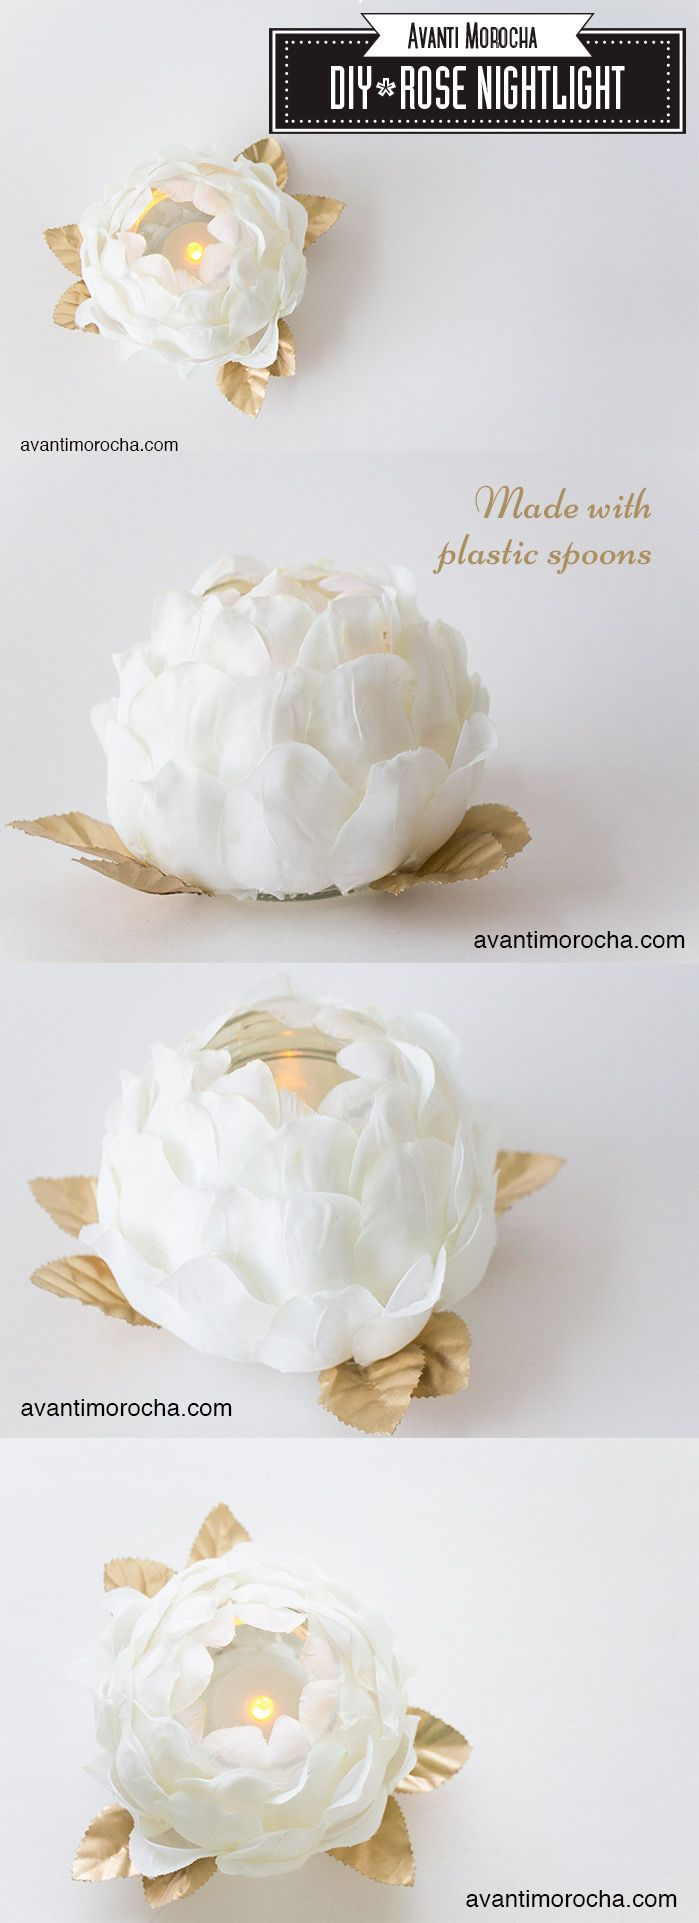 DIY Rose Nightlight - Mother's Day Gift idea - Great for Wedding tables / decoration - You won't believe it's made with plastic spoons.